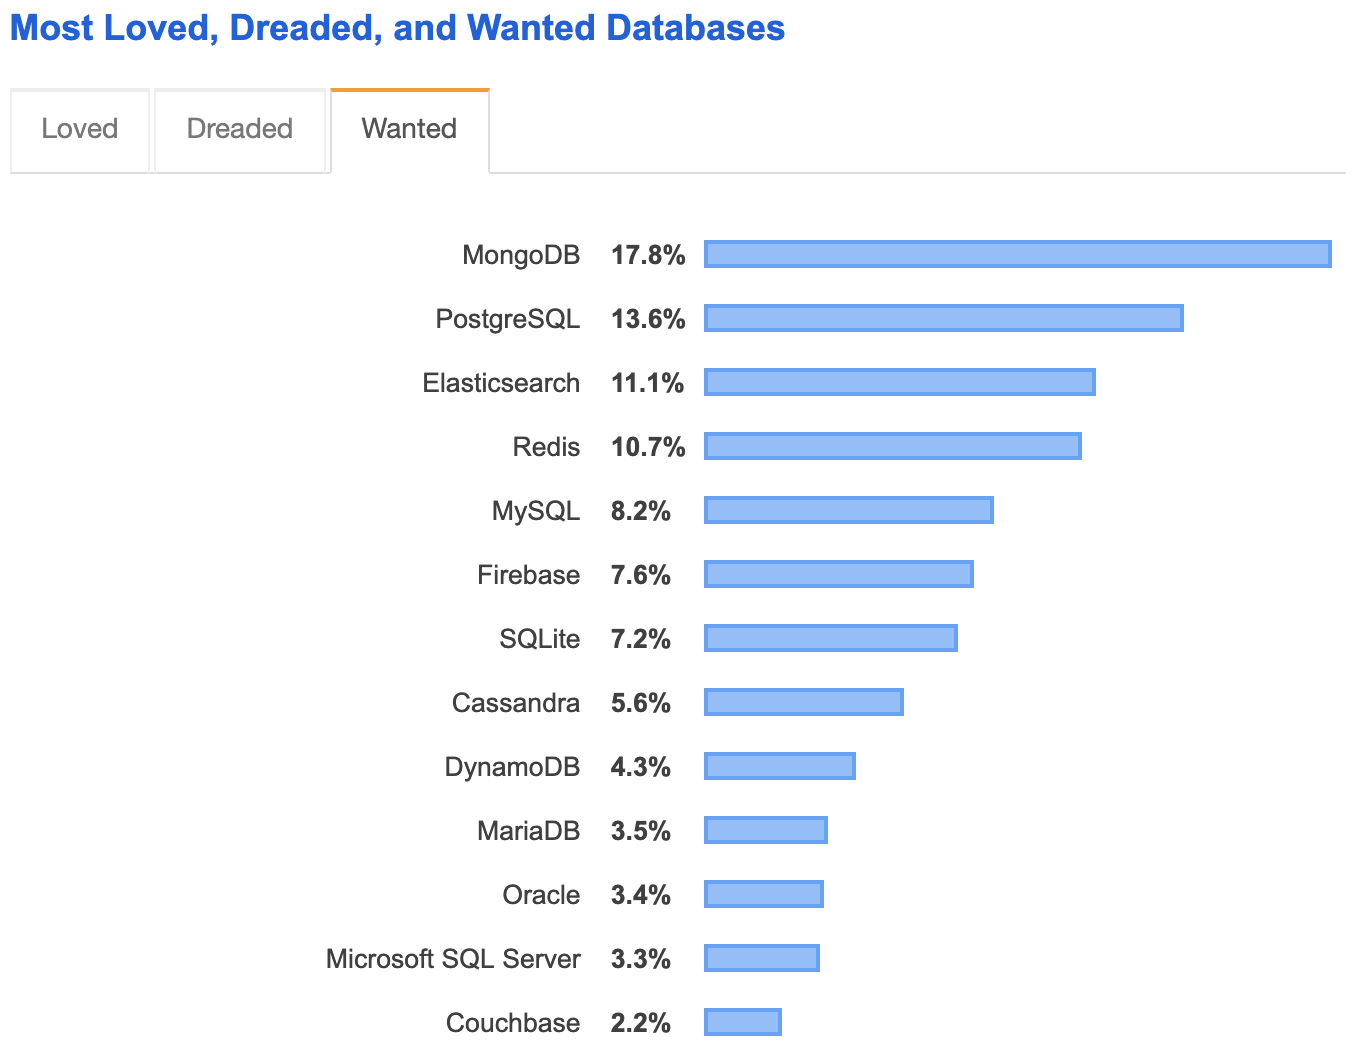 Most Loved, Dreaded, and Wanted Databases